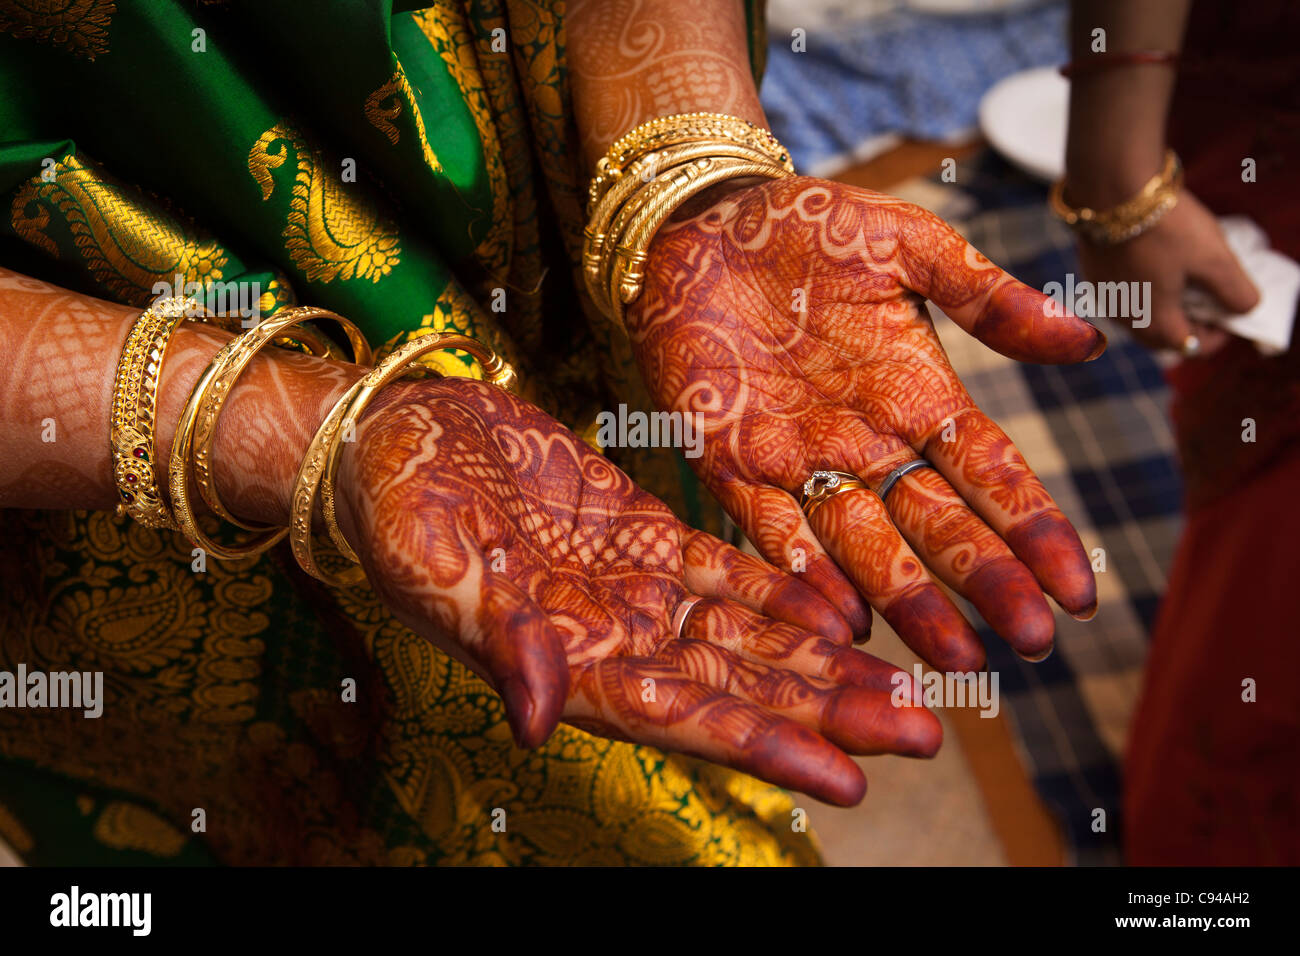 India assam guwahati weddings mehndi traditional henna india assam guwahati weddings mehndi traditional henna decorative patterns on hands of bride junglespirit Choice Image